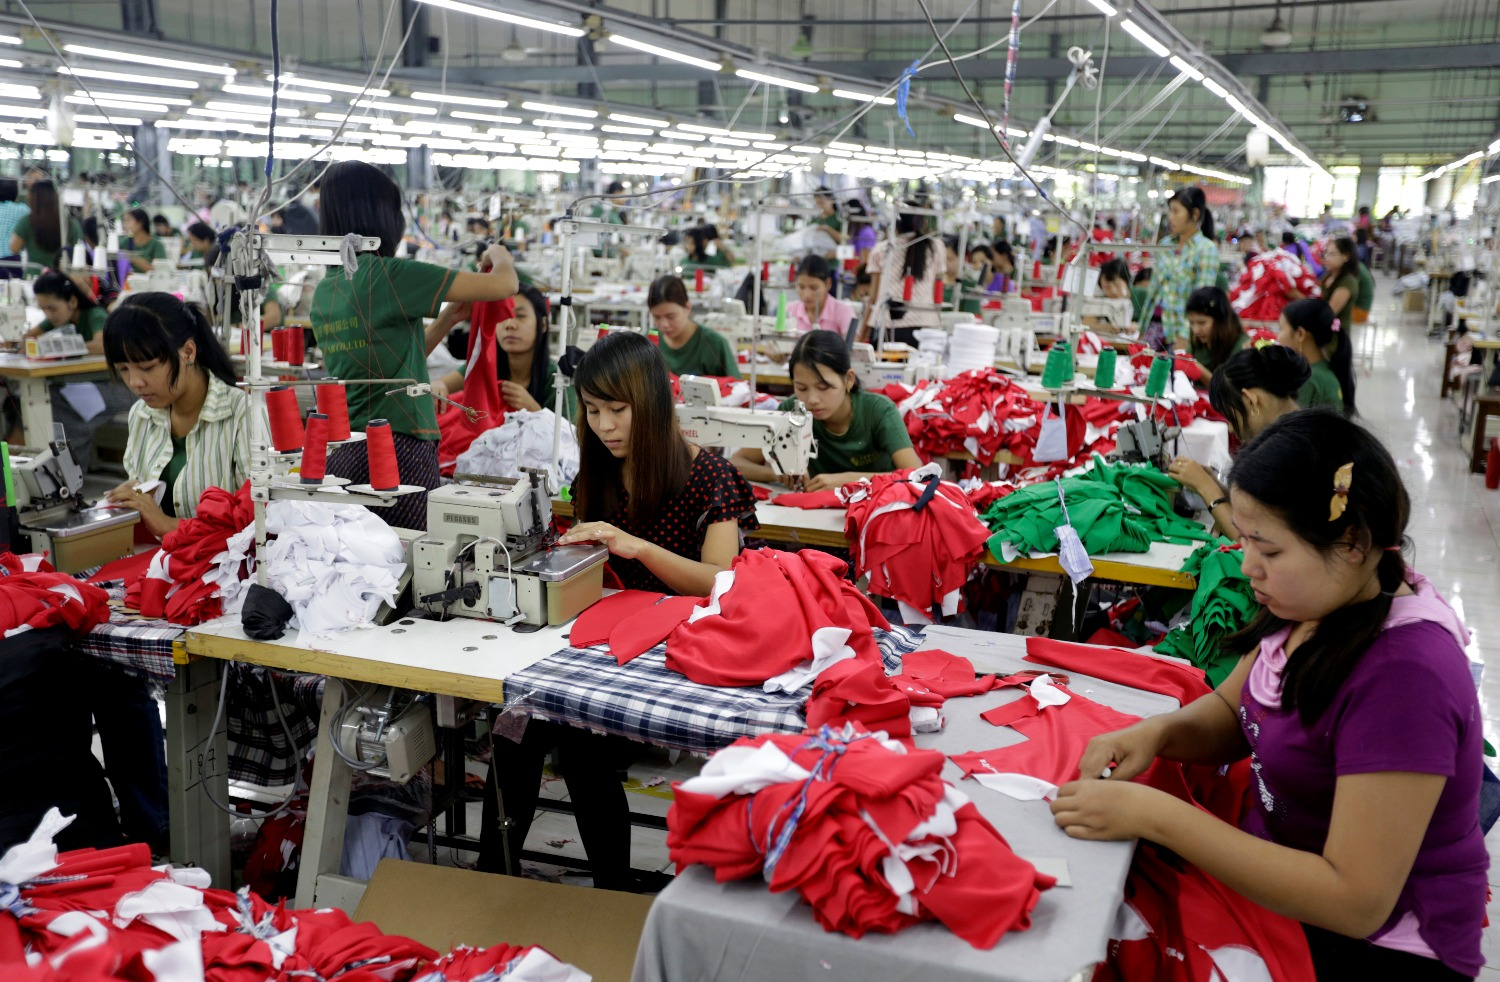 Myanmar should enhance the production of domestic products to grow local economy and raise their quality to international standards